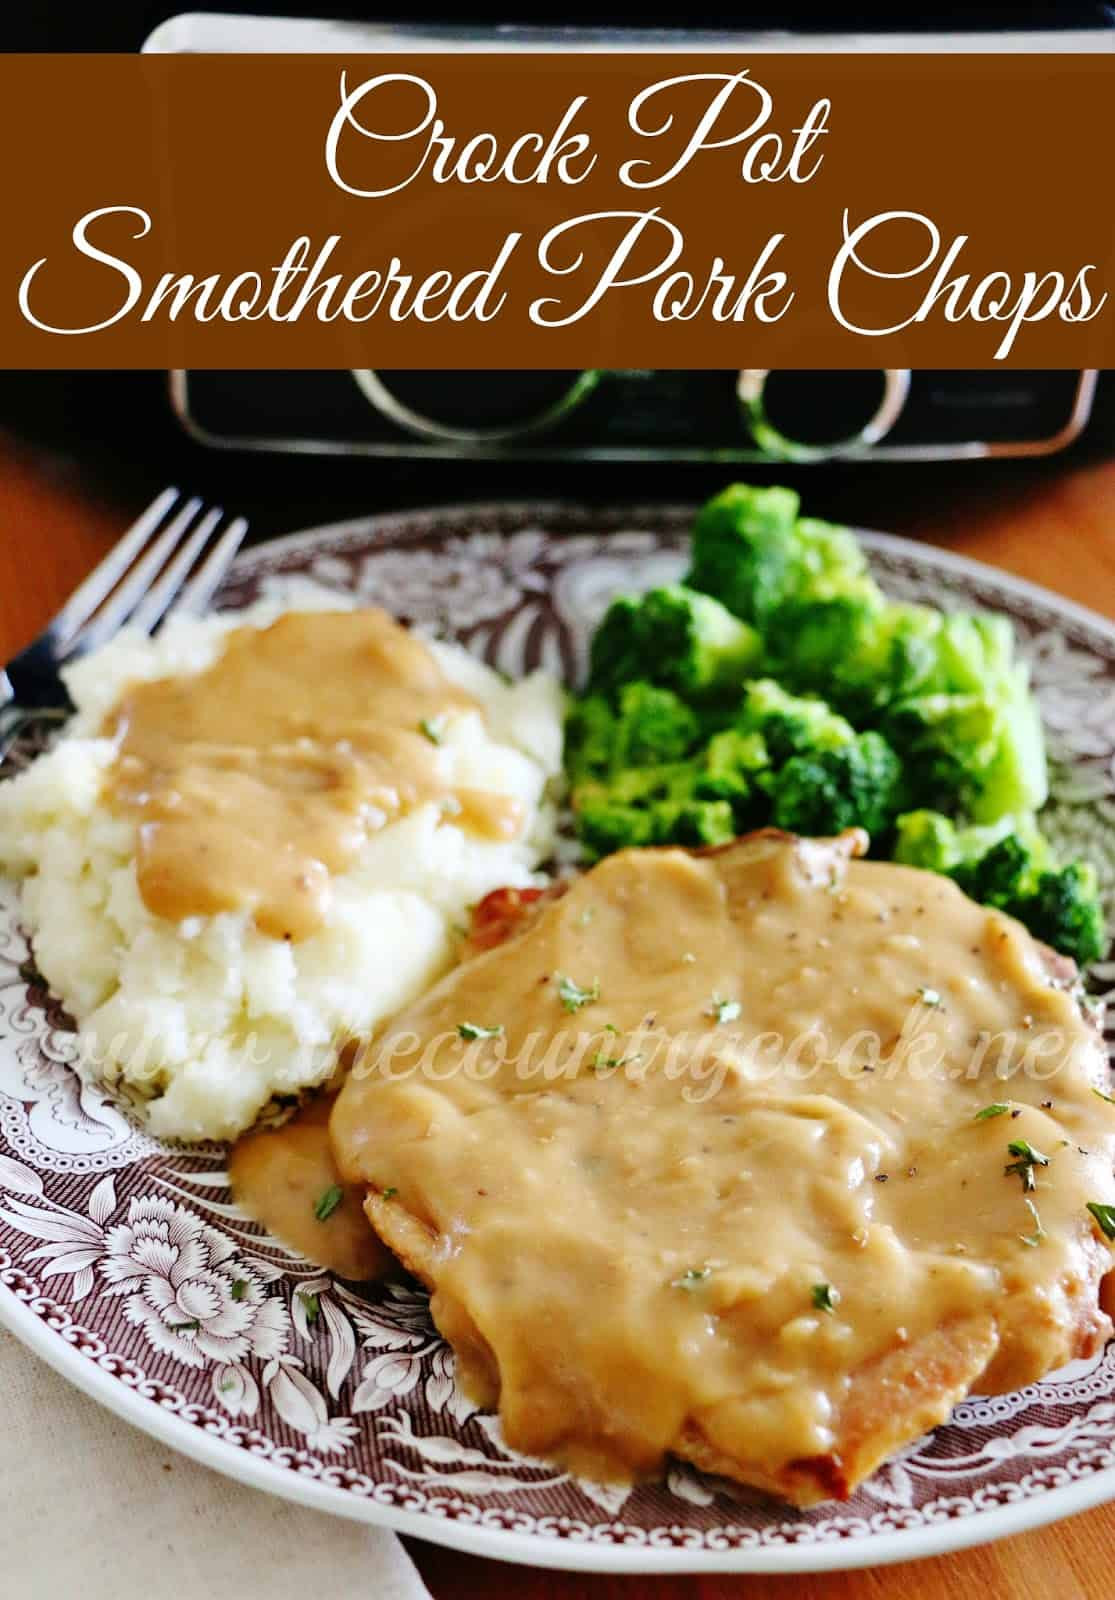 Pork Chops Recipes In Crock Pot  Crock Pot Smothered Pork Chops The Country Cook